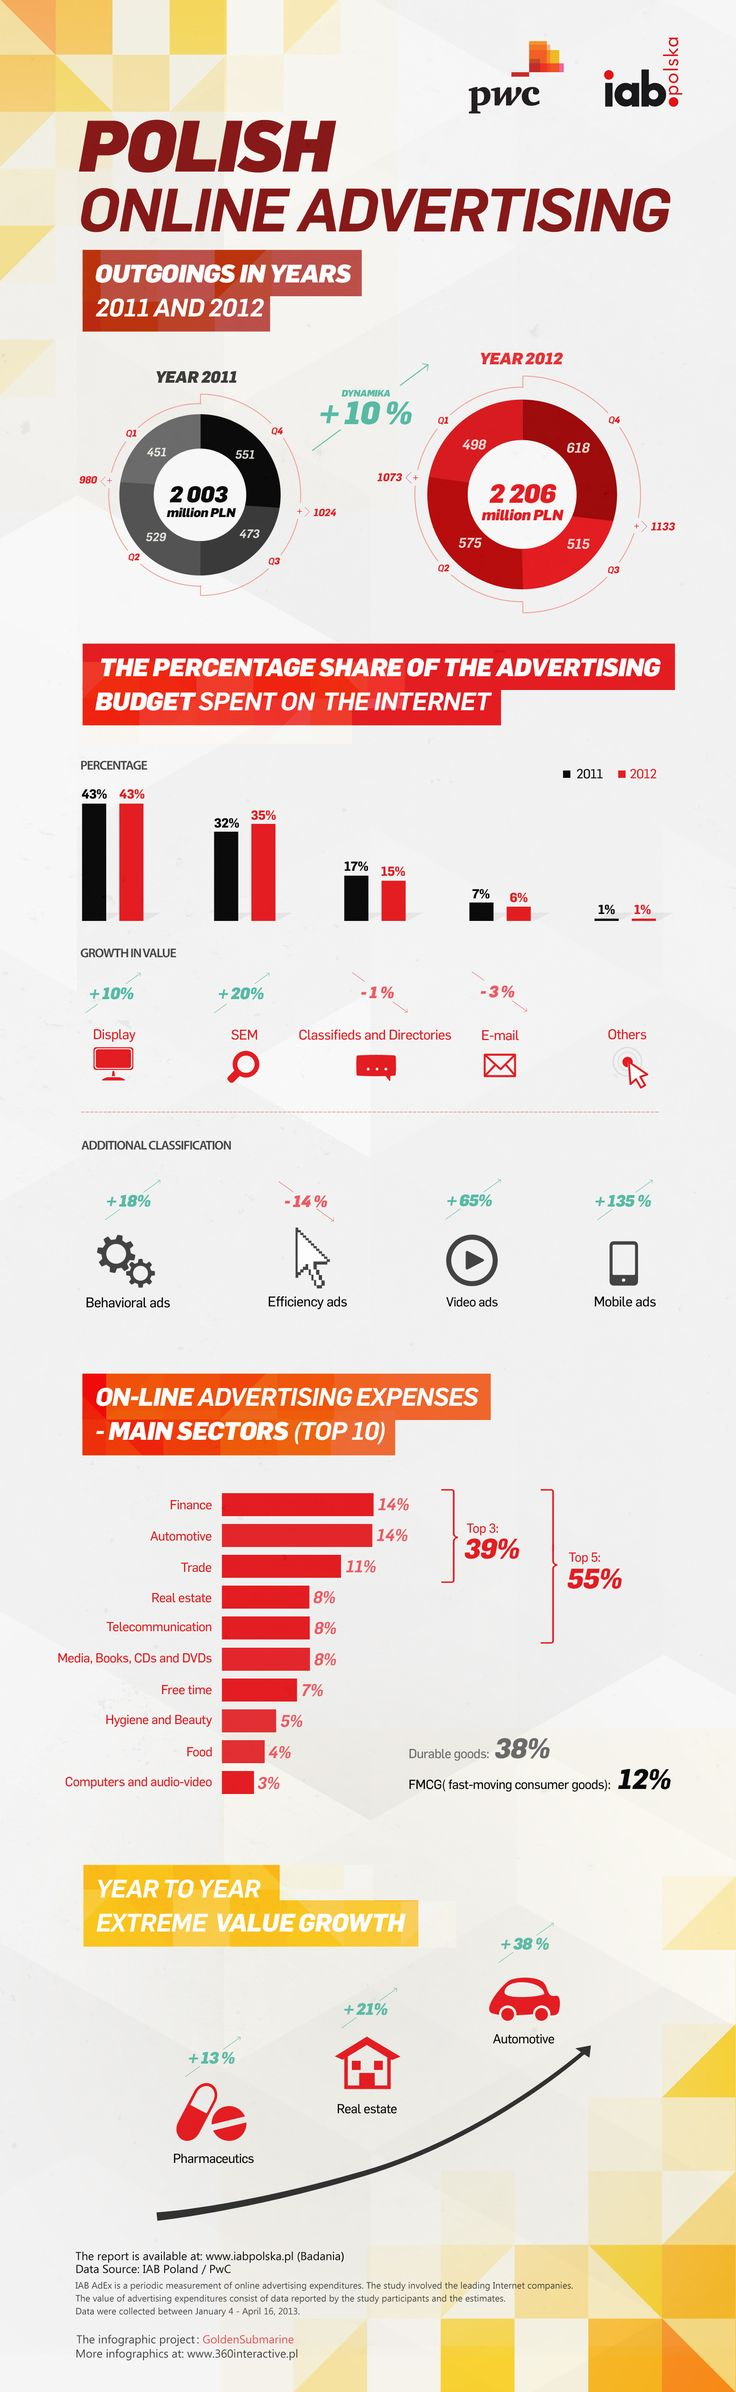 Polish online advertising outgoins in years 2011 and 2012